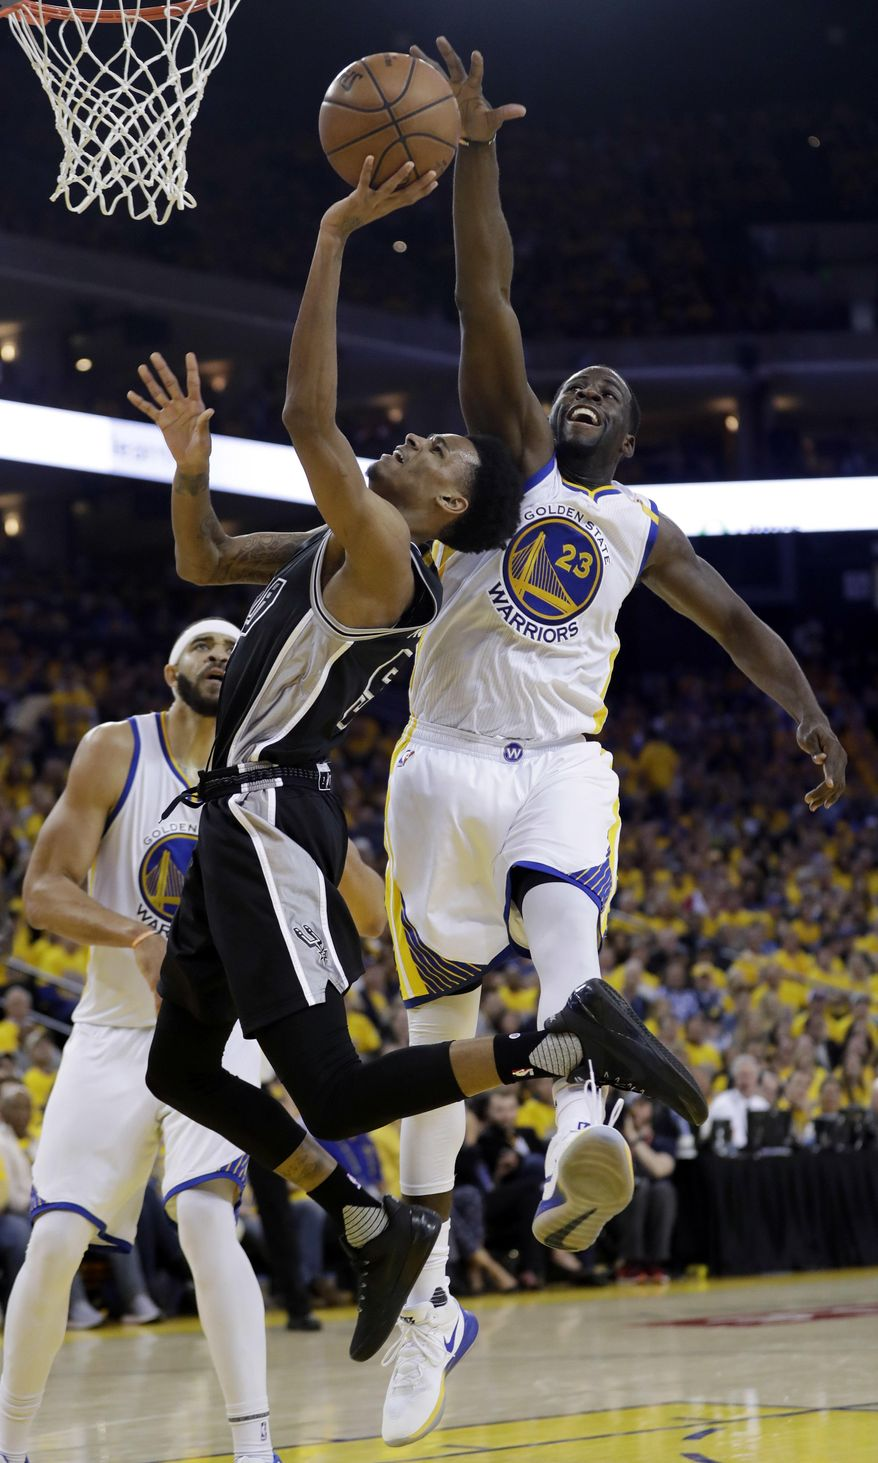 Golden State Warriors' Draymond Green (23) blocks a shot from San Antonio Spurs' Dejounte Murray during the second half of Game 2 of the NBA basketball Western Conference finals, Tuesday, May 16, 2017, in Oakland, Calif. (AP Photo/Marcio Jose Sanchez)